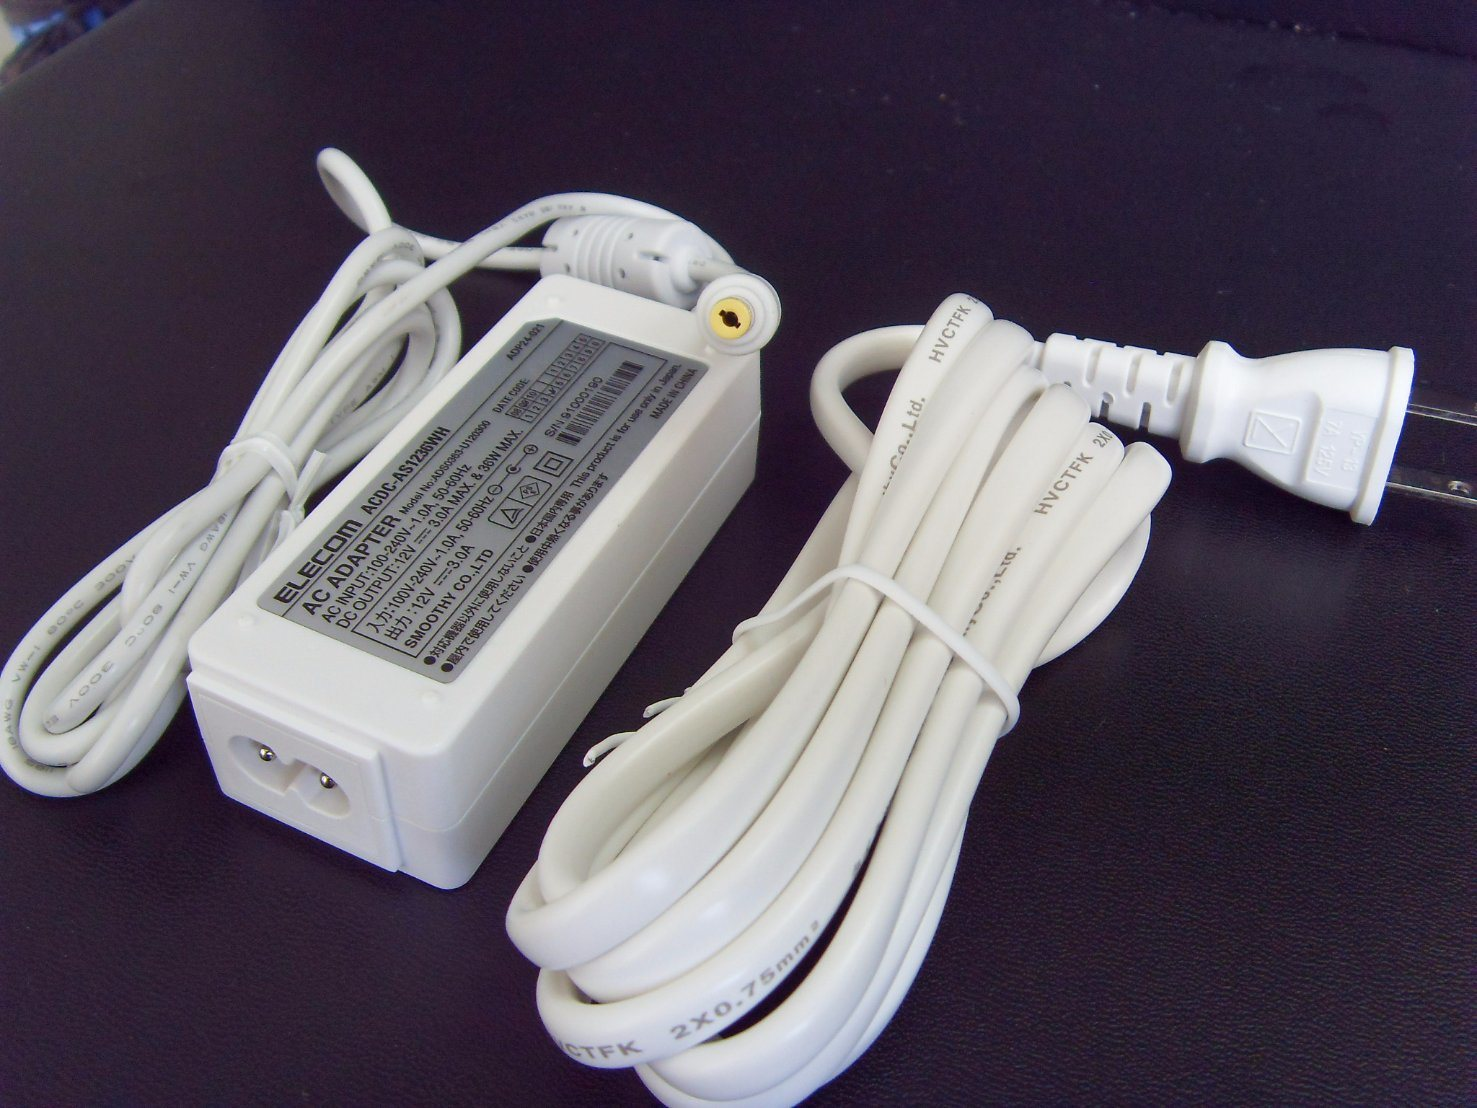 for Asus 12V 3A PC Laptop AC Adapter Power Supply Charger White